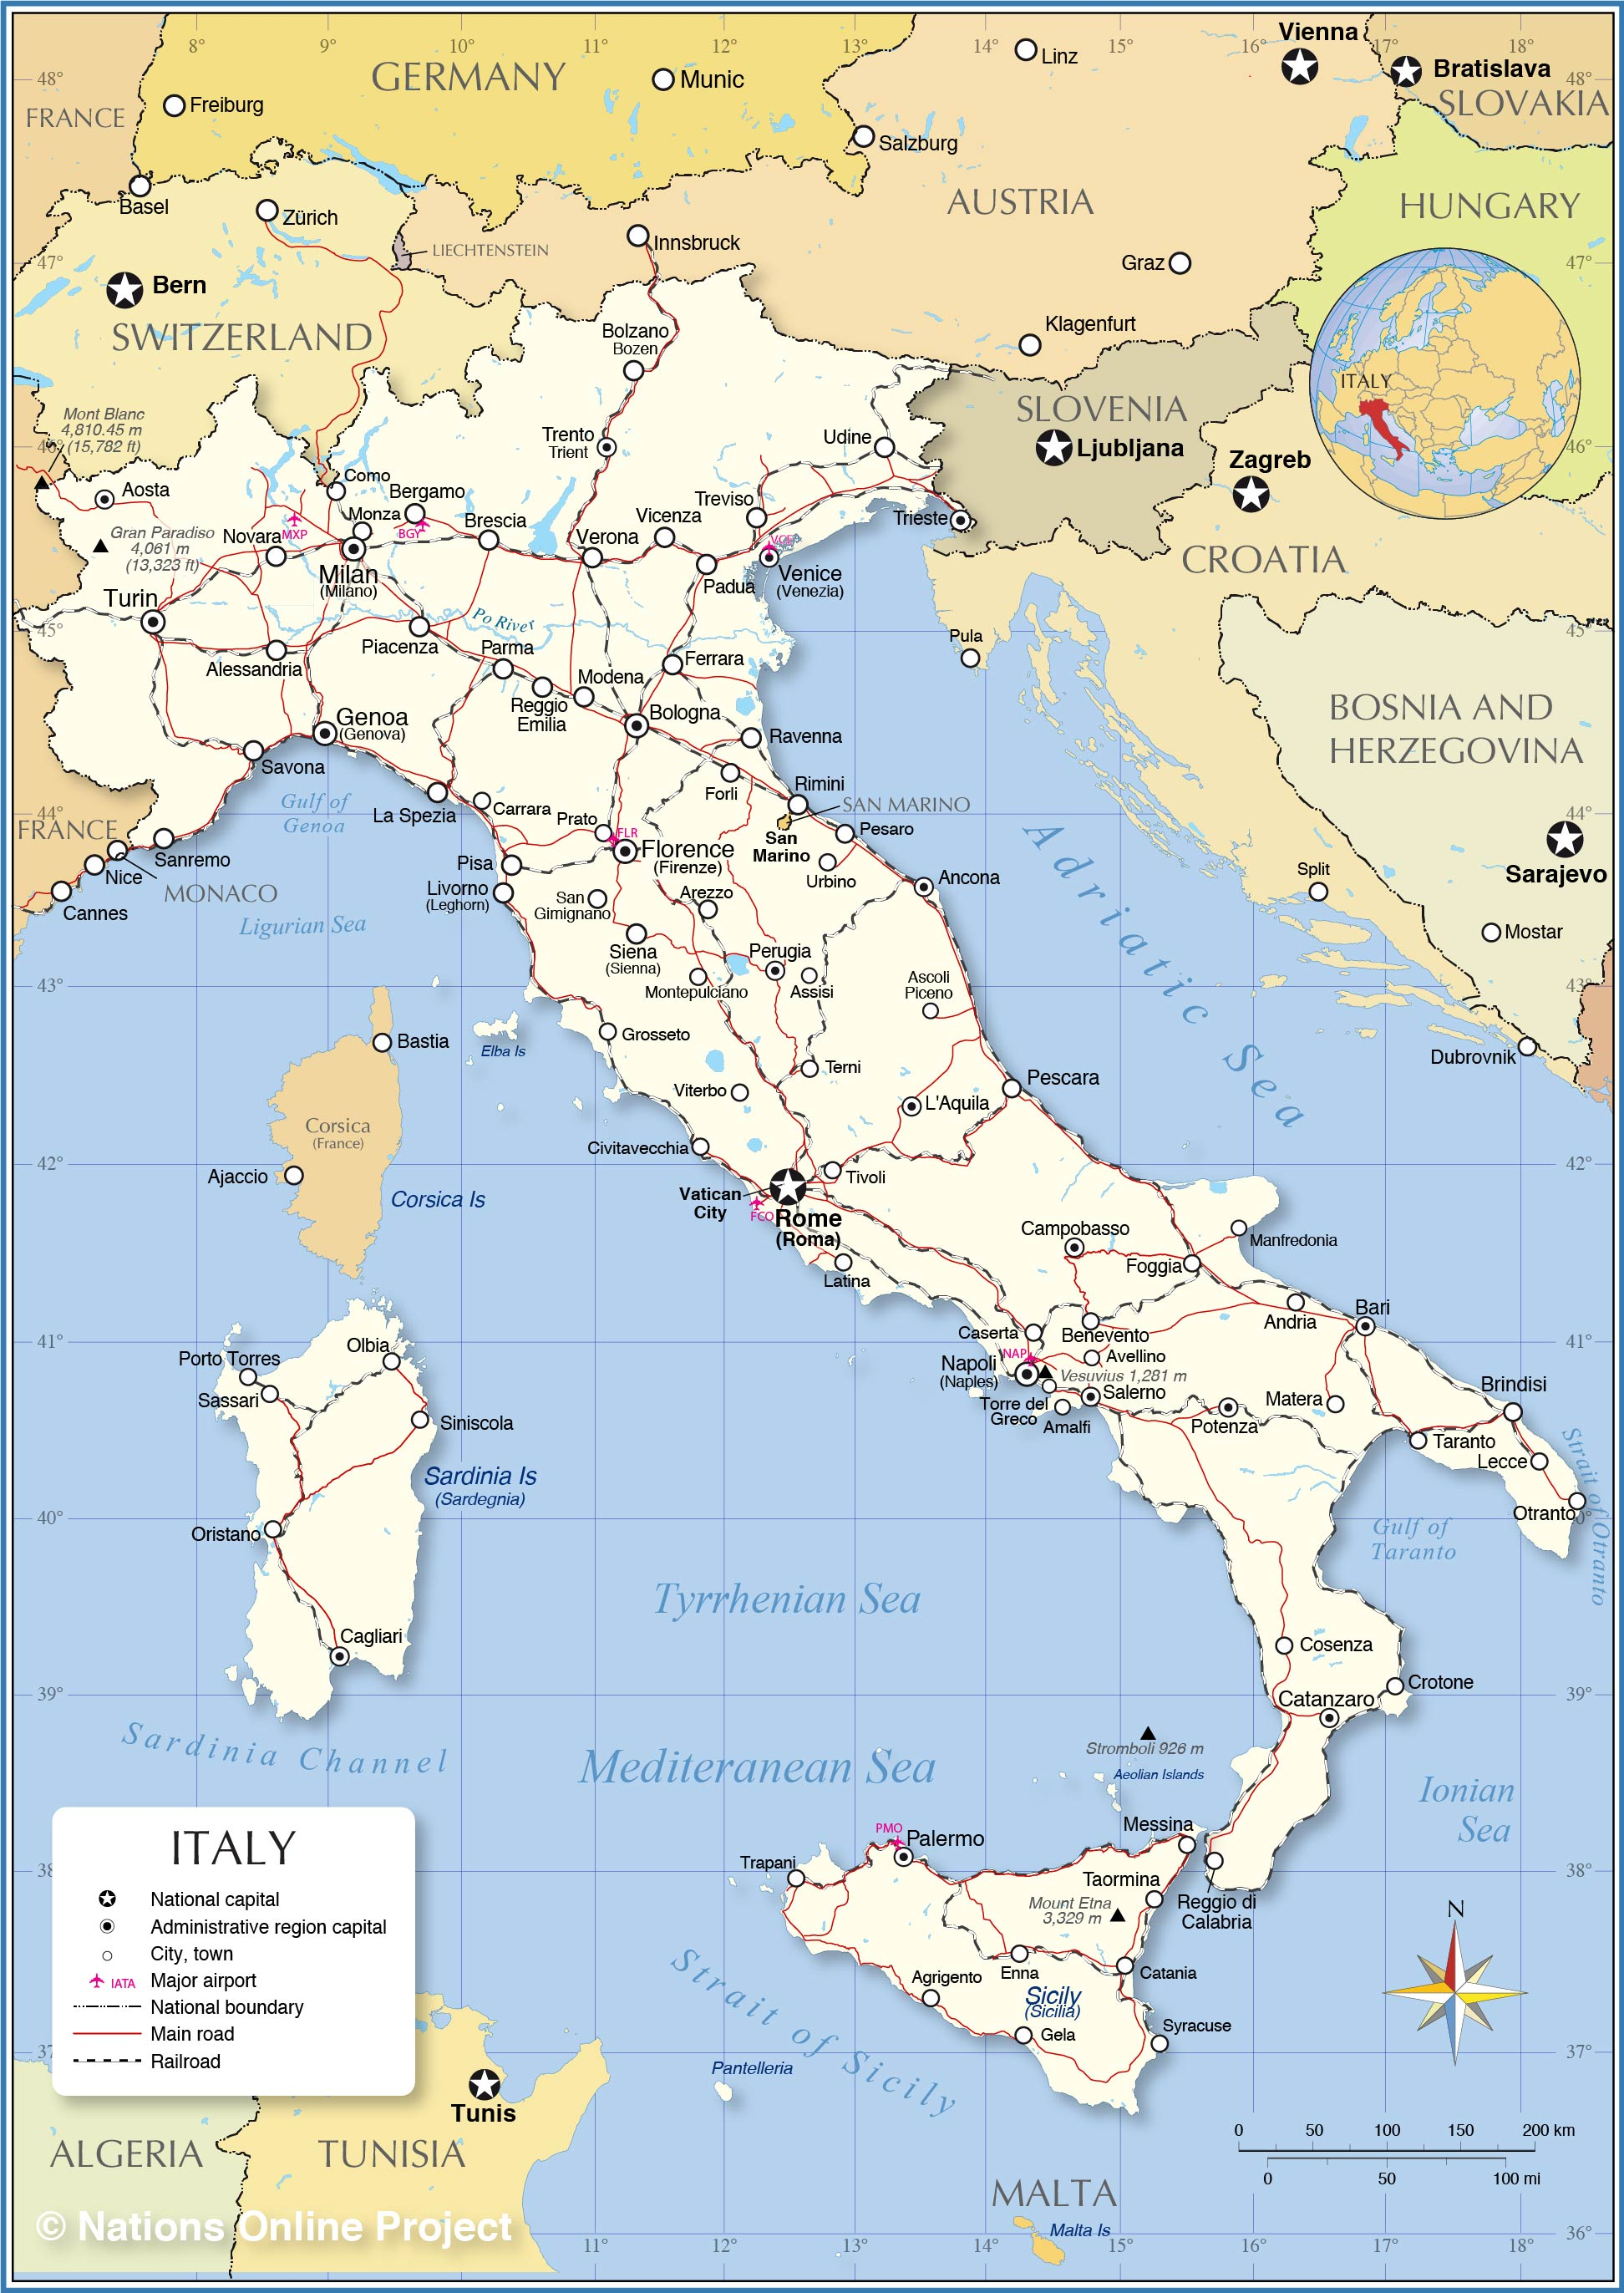 Map Of Italy With Towns.Political Map Of Italy Nations Online Project